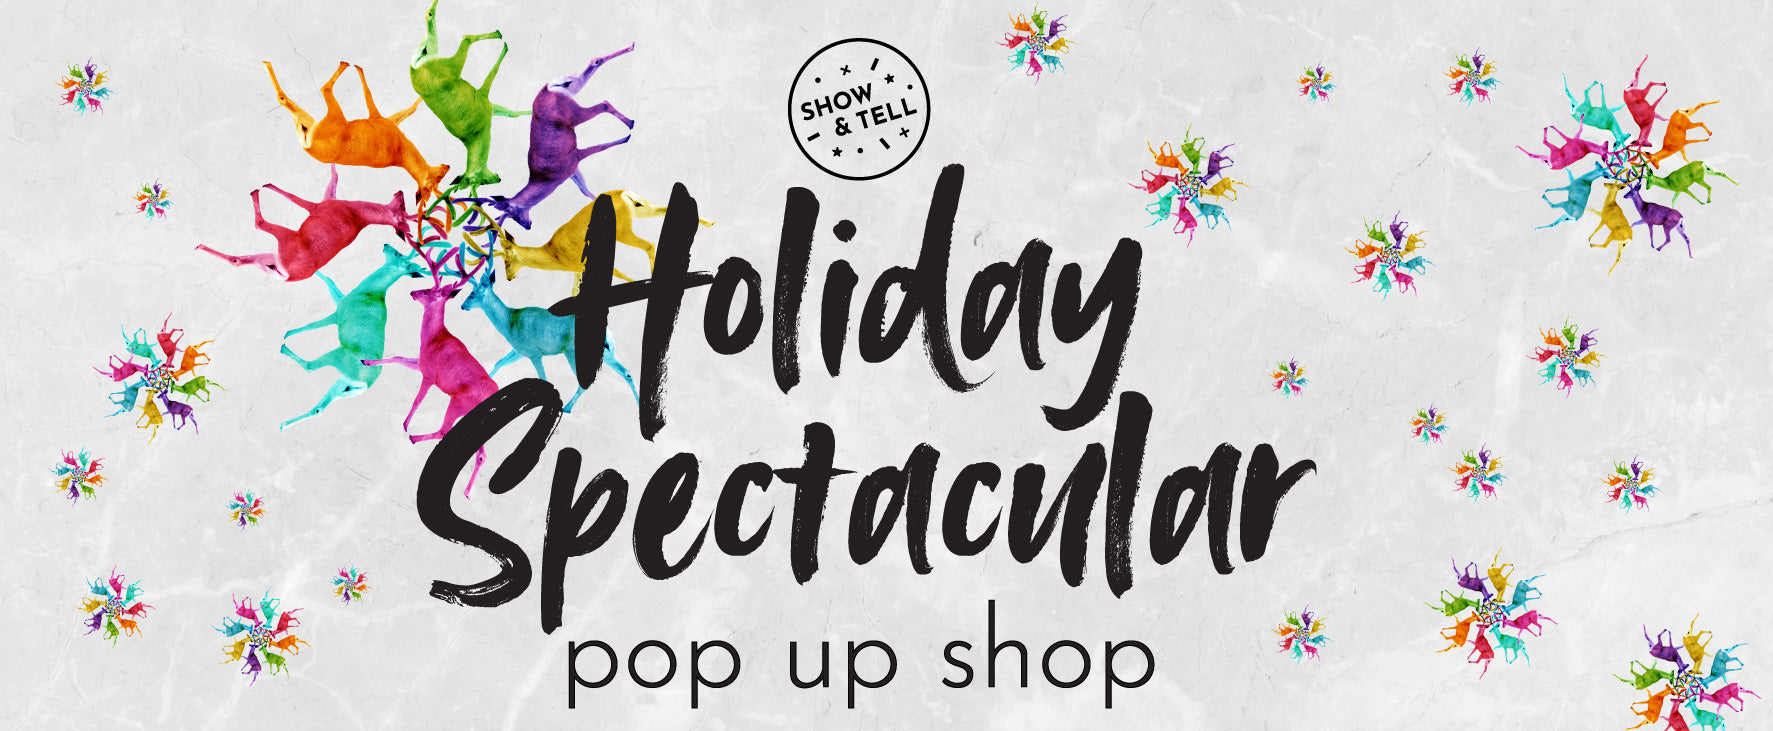 Holiday Pop-Up Events